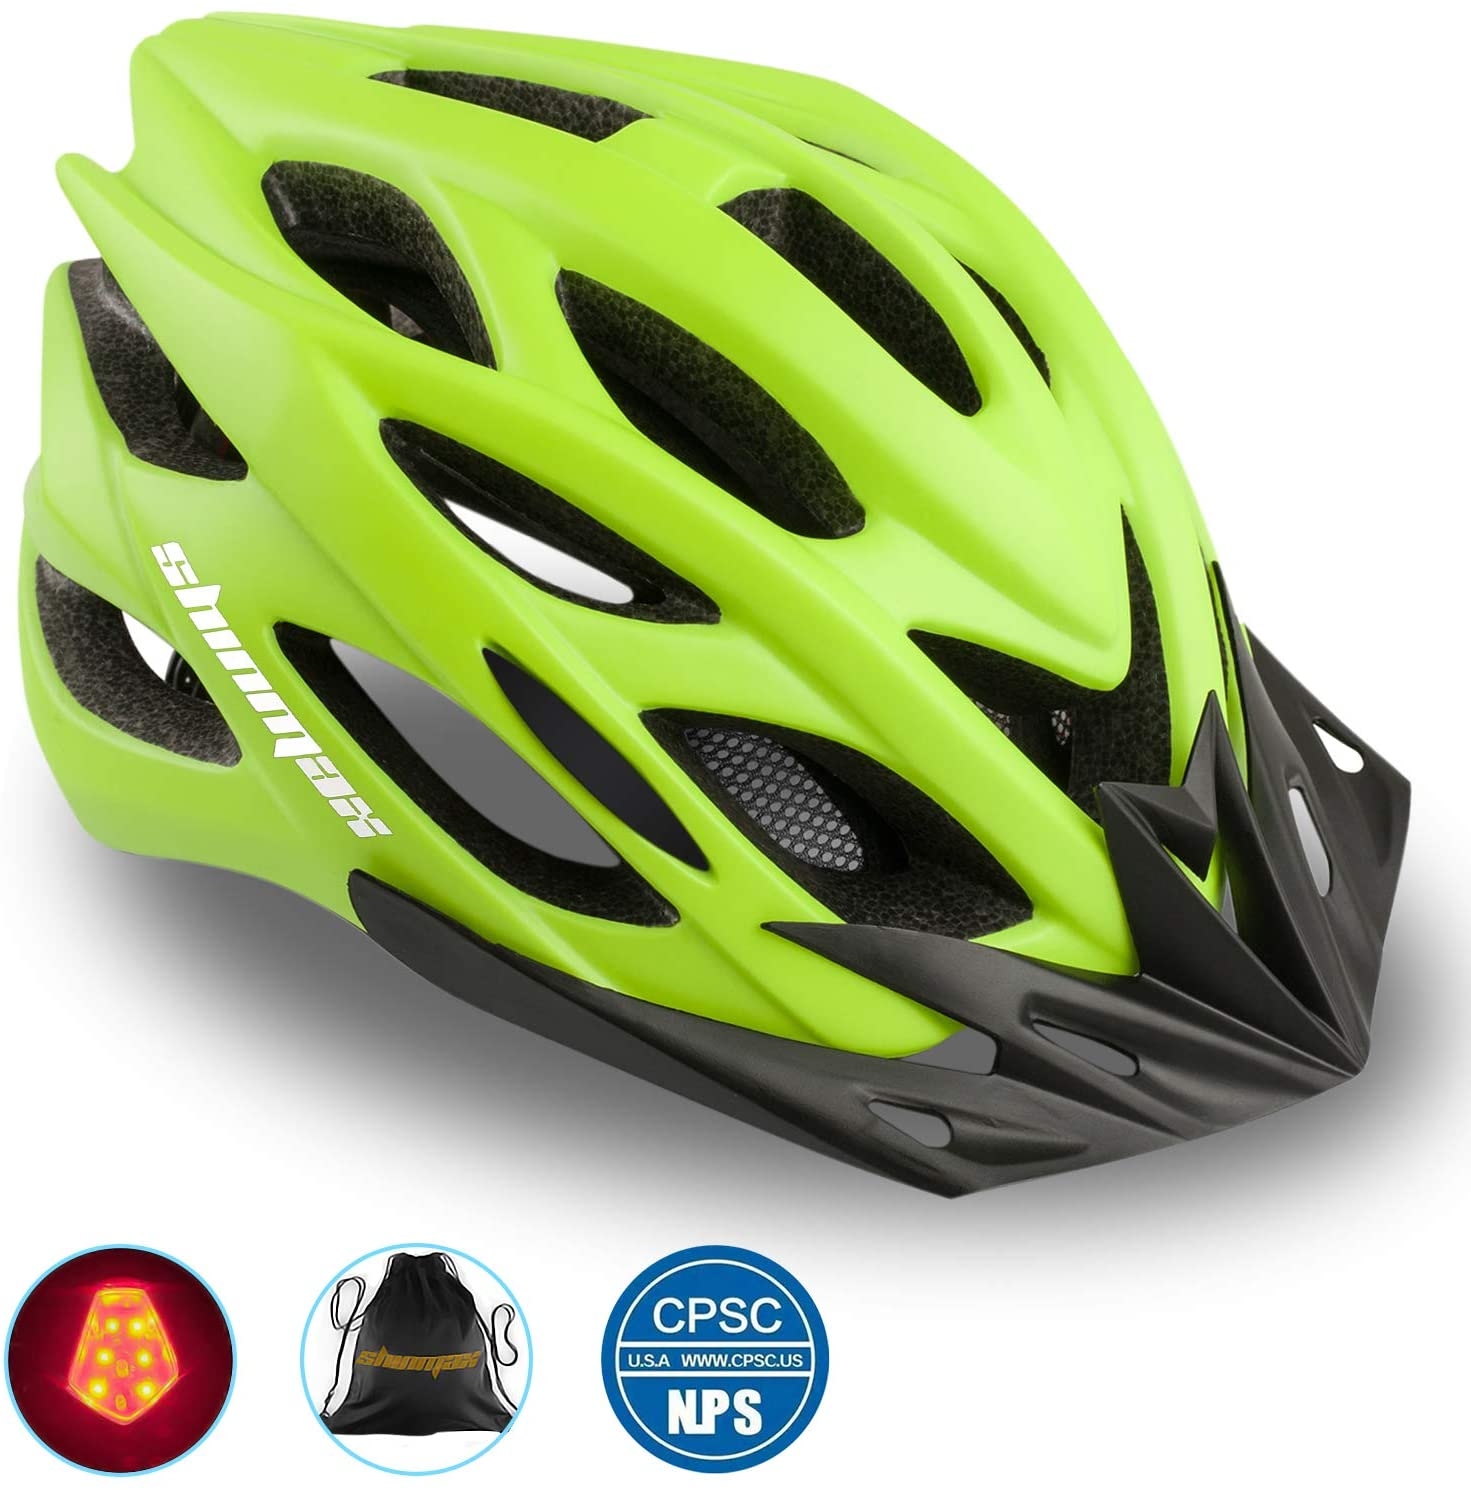 Shinmax Bike Helmet,Bicycle Helmet CPSC/CE Certified Adjustable Size Ultralight Adult Cycling Helmet with Visor&Rear Light &Portable Backpack Specialized Cycling Helmet for Men Women SM-UHD